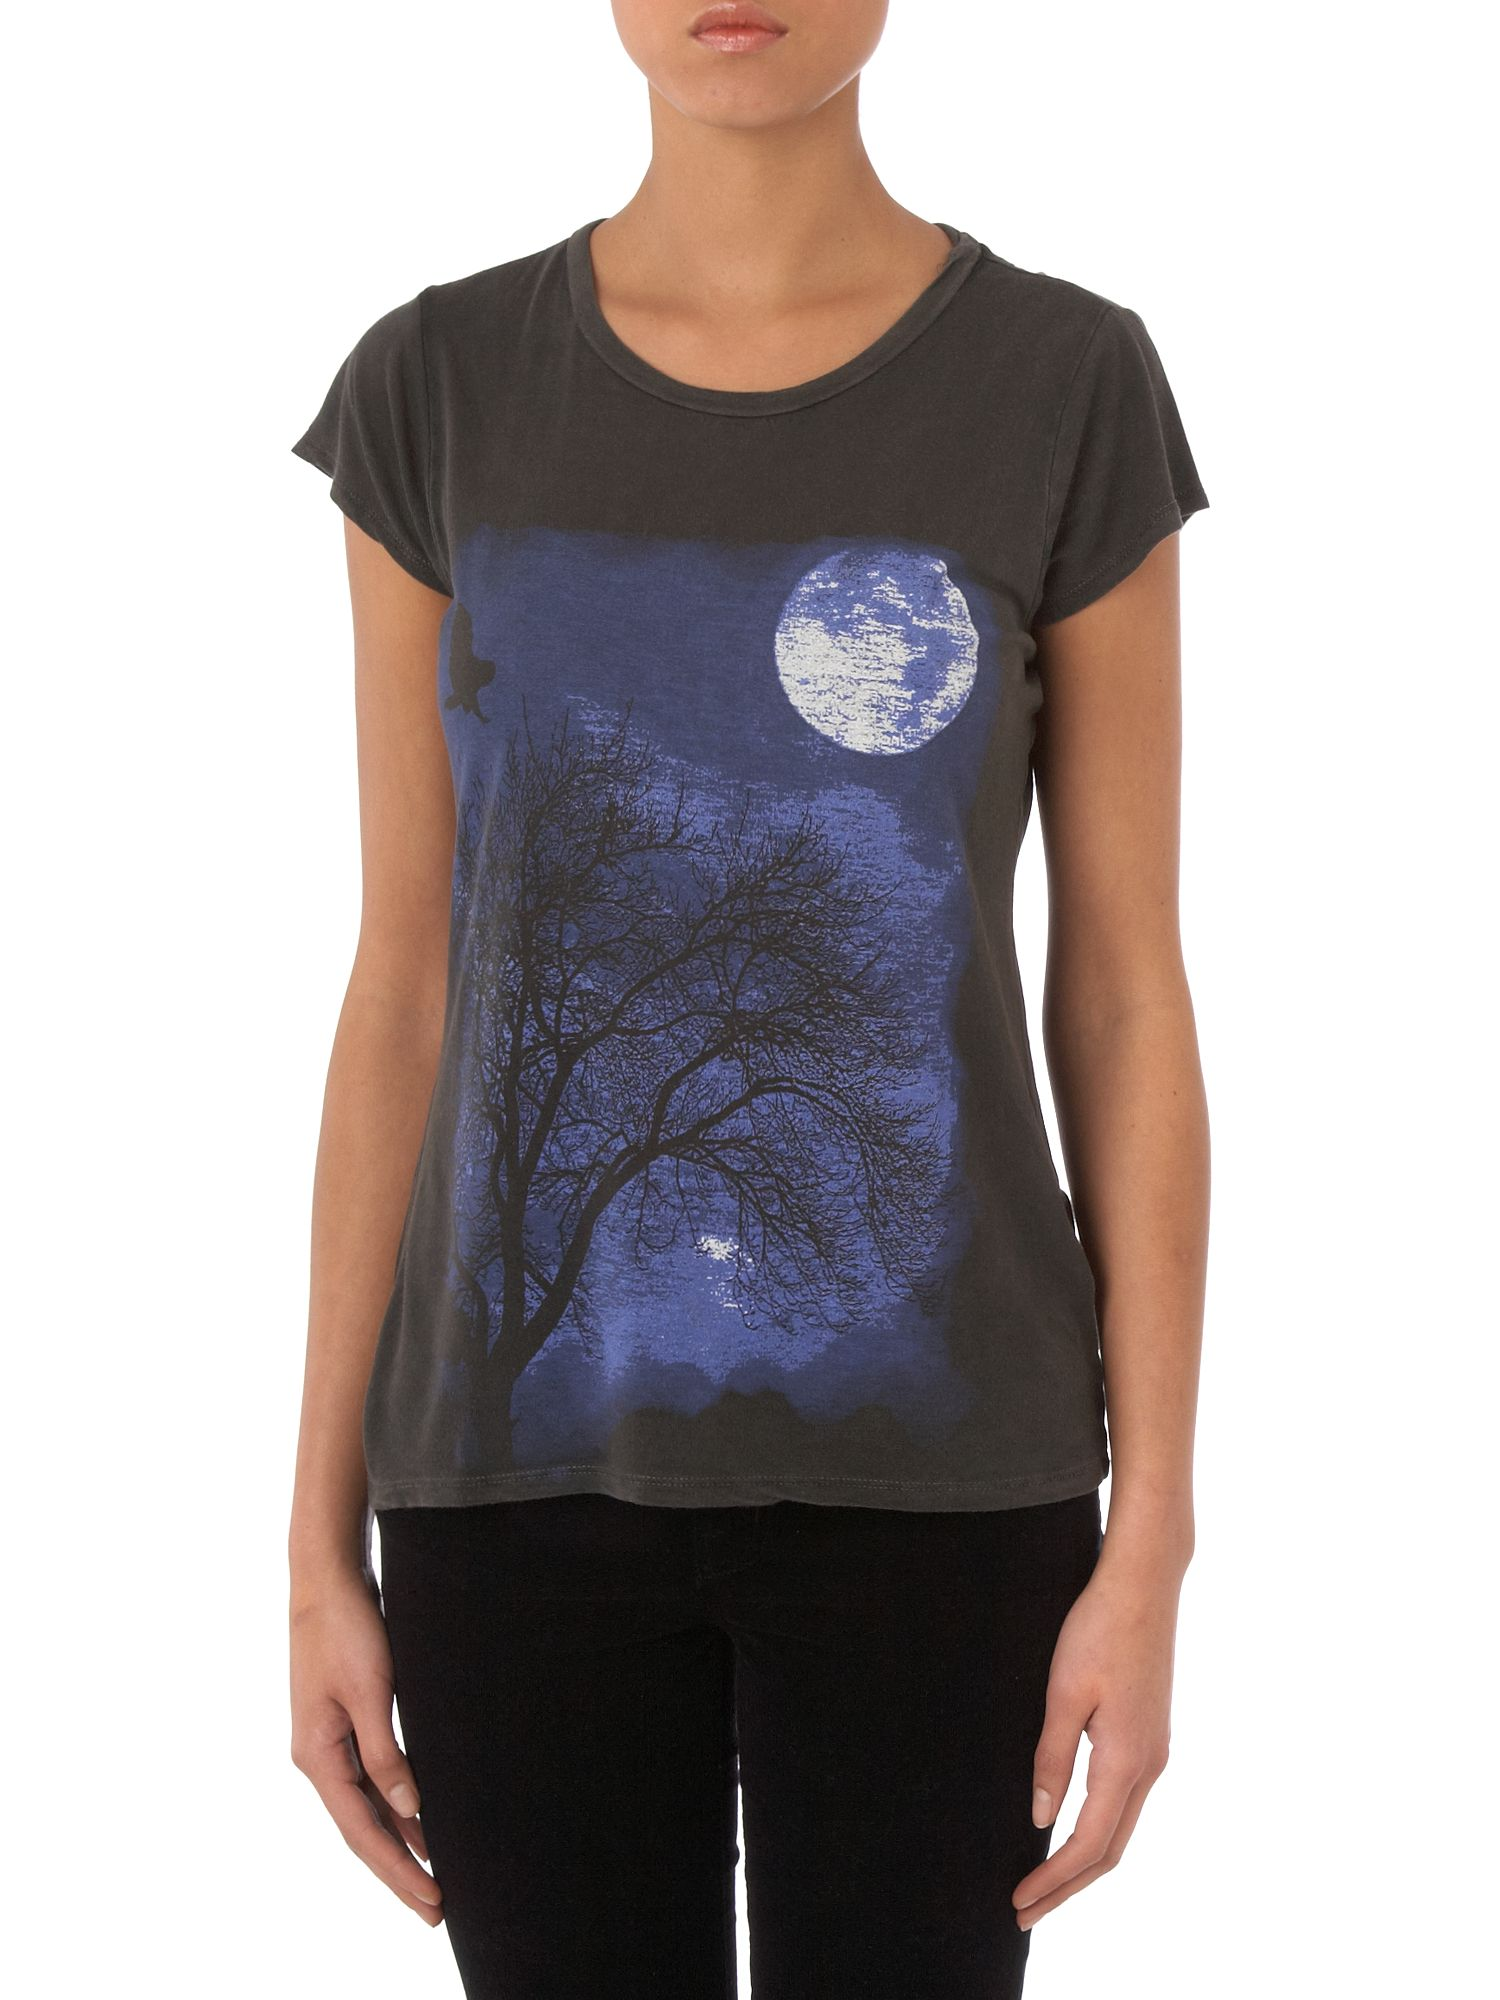 Therapy Moonlit woodland t-shirt - Grey 8,6,14 product image